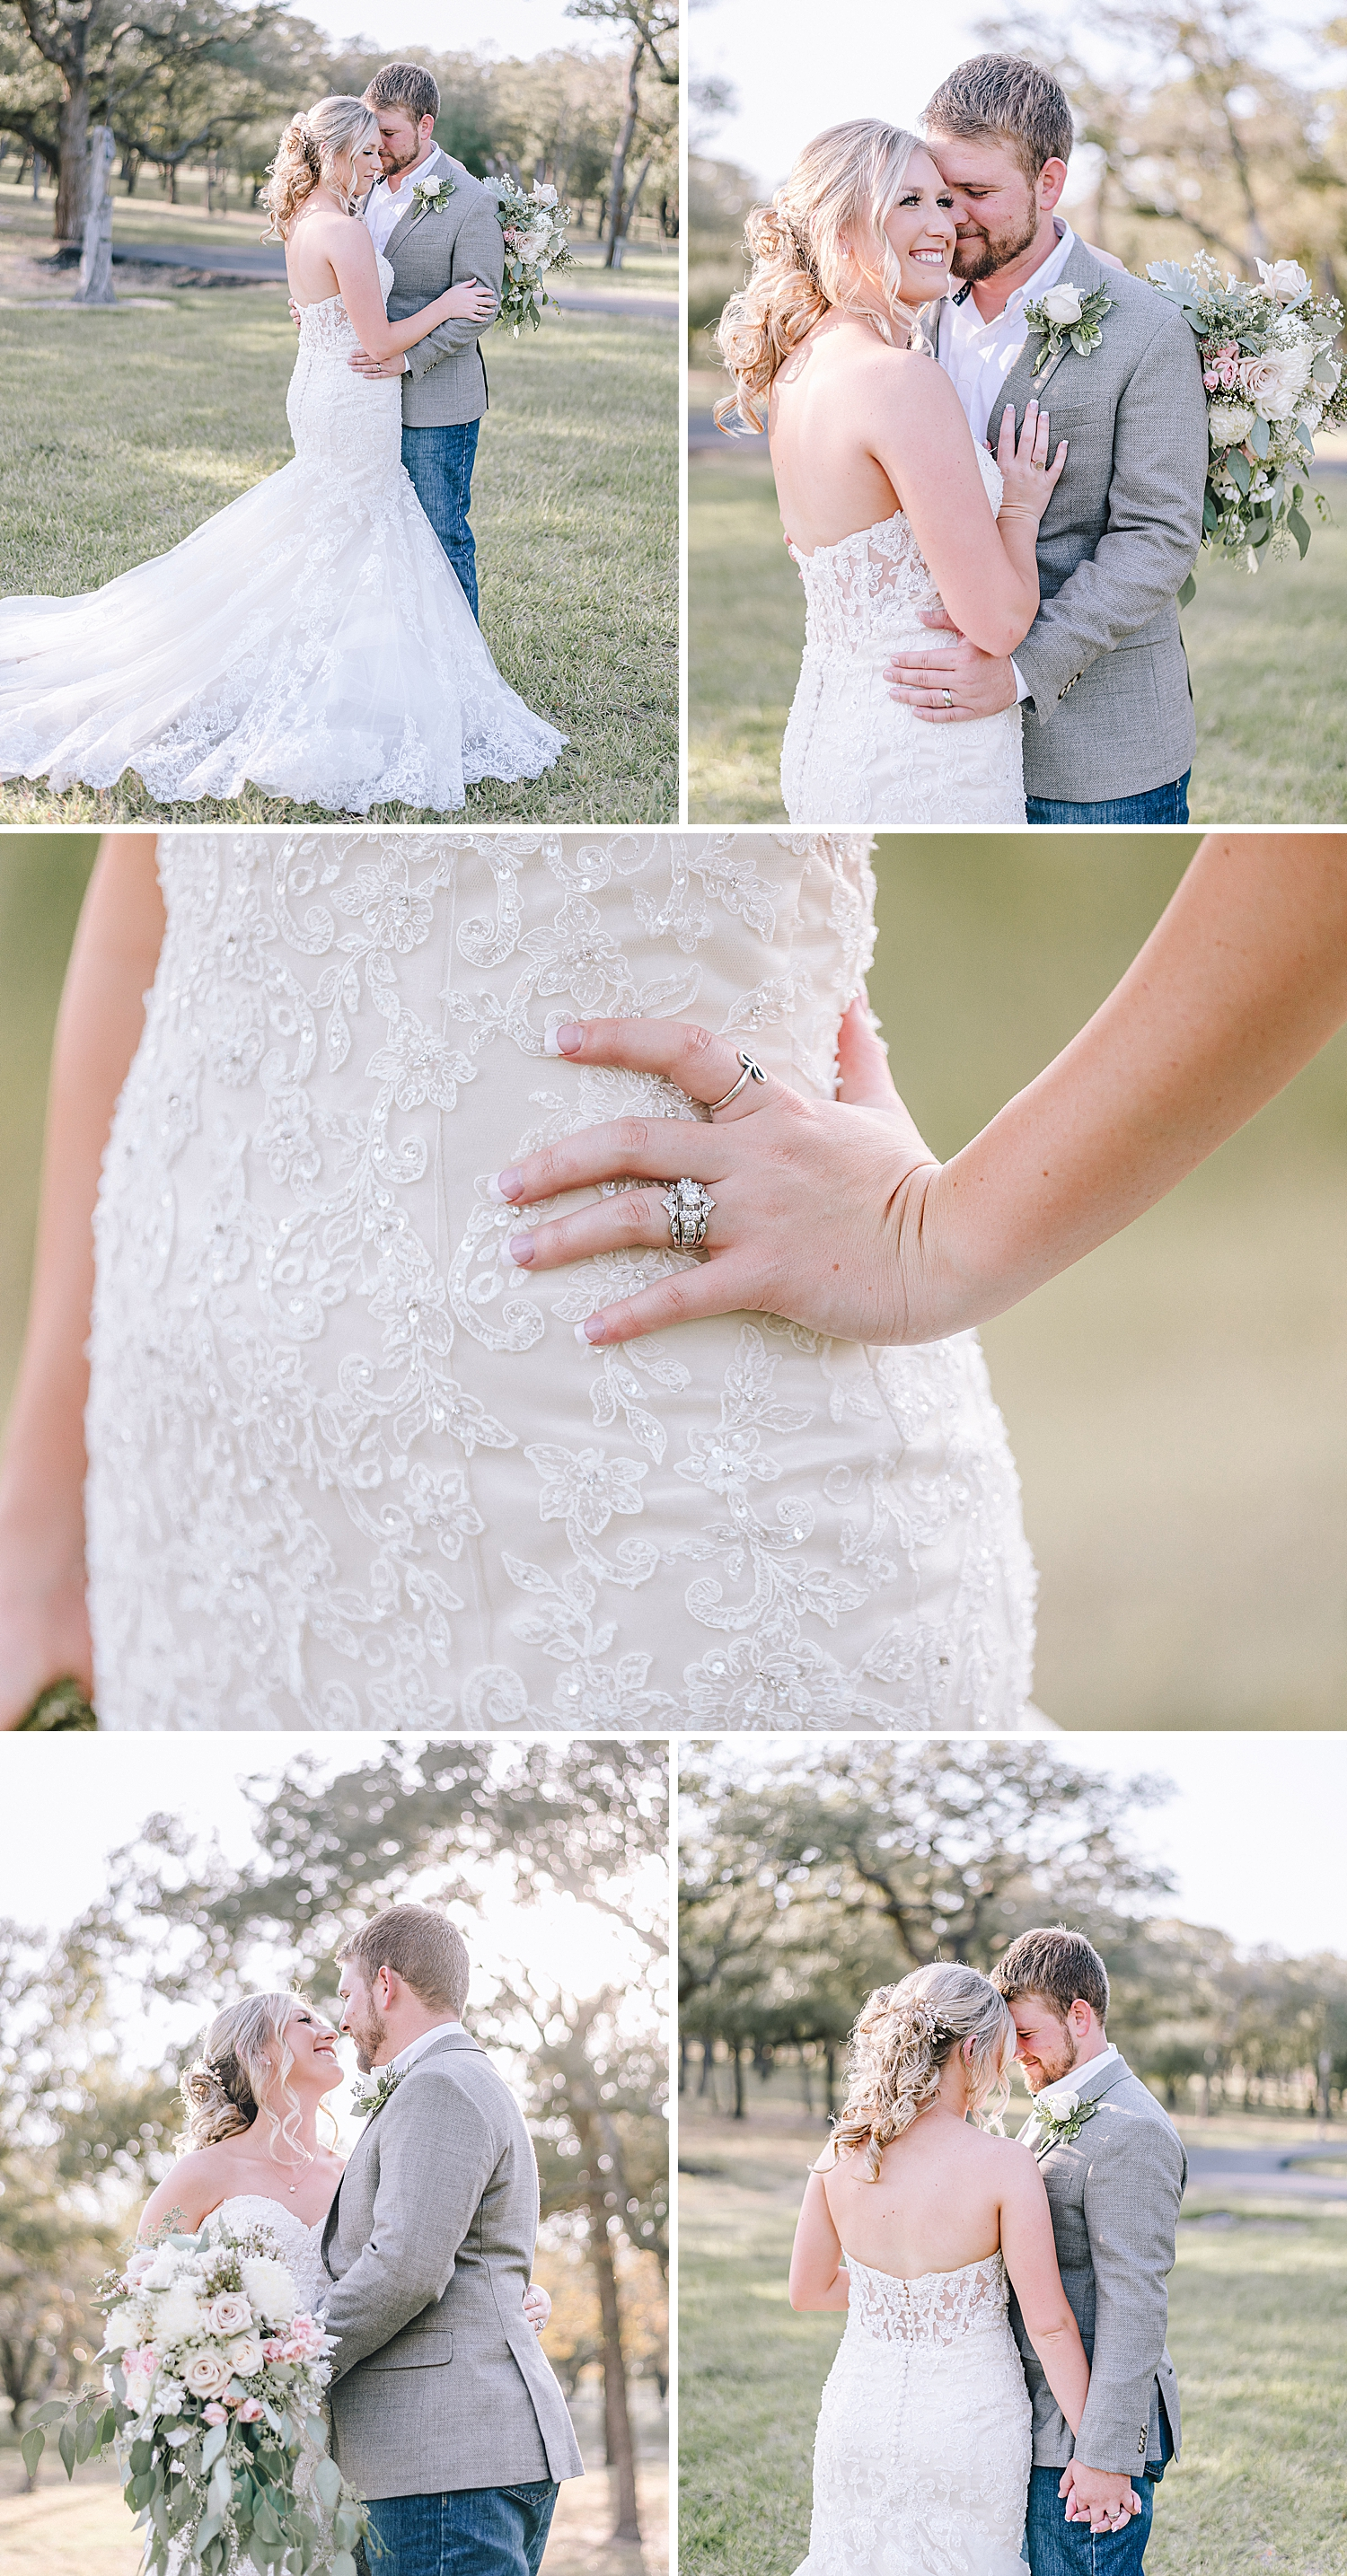 Rackler-Ranch-LaVernia-Texas-Wedding-Carly-Barton-Photography_0100.jpg